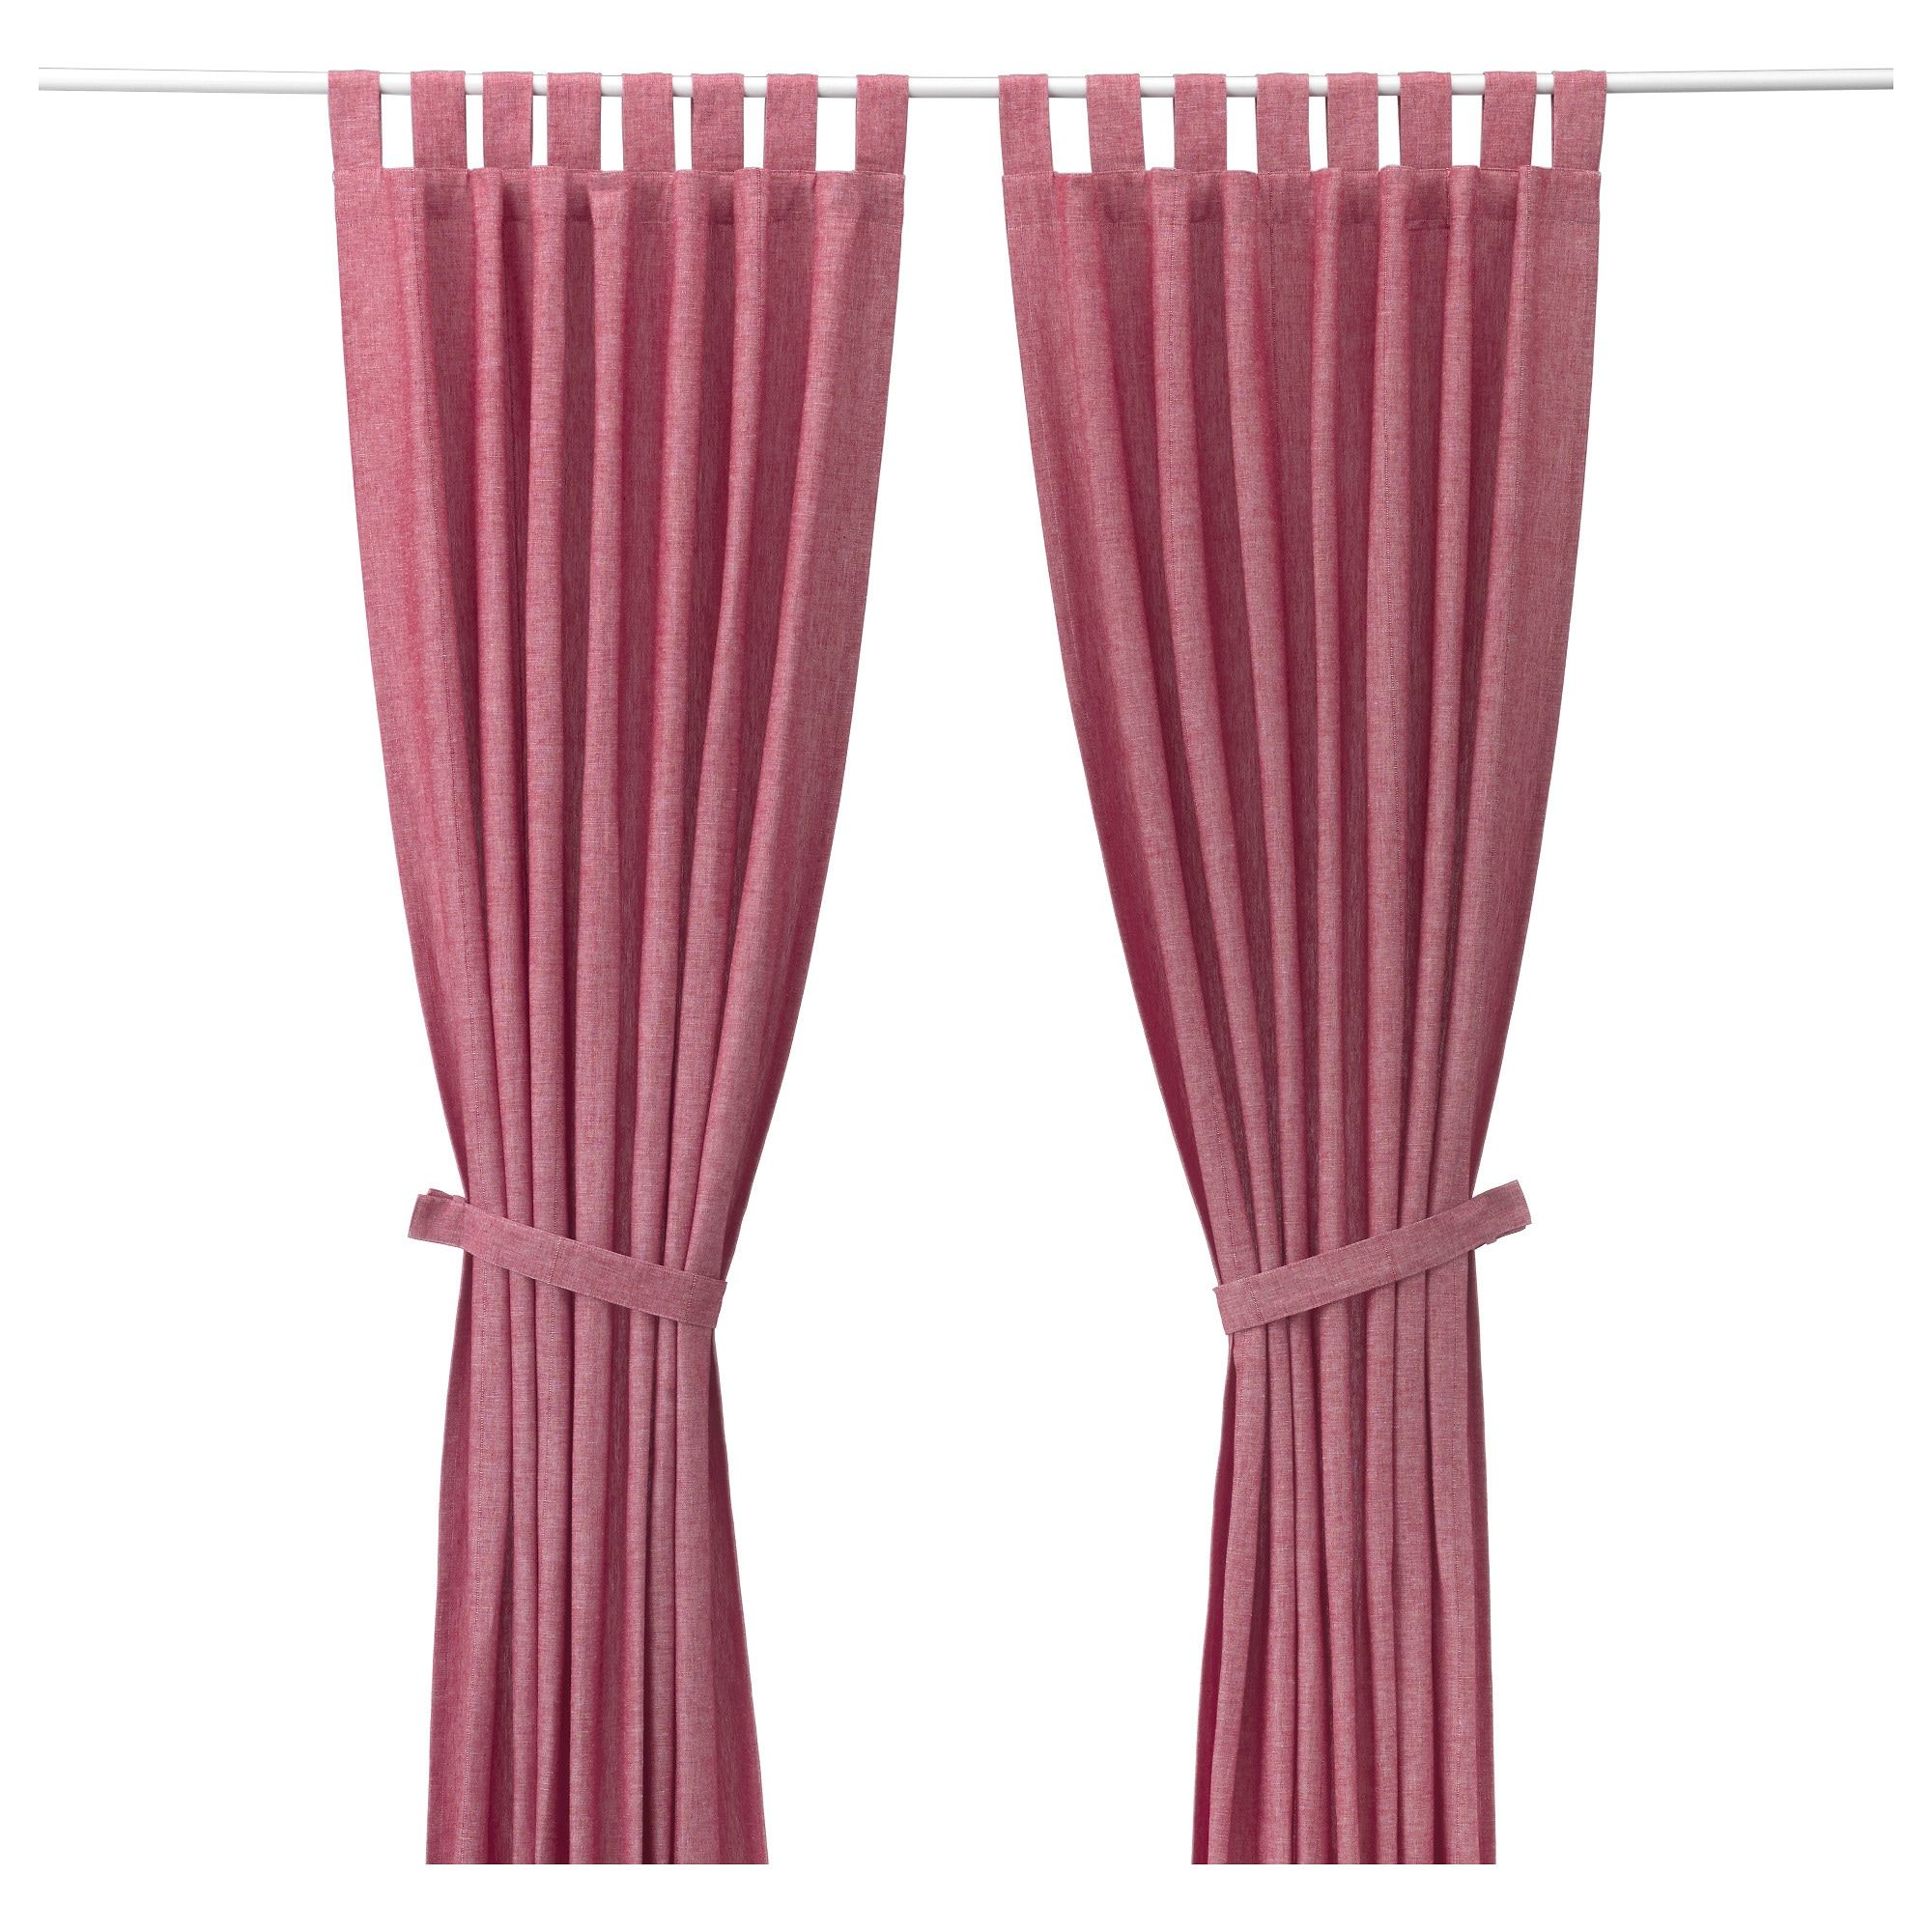 "Images Of Curtains lenda curtains with tie-backs, 1 pair - 55x98 "" - ikea"